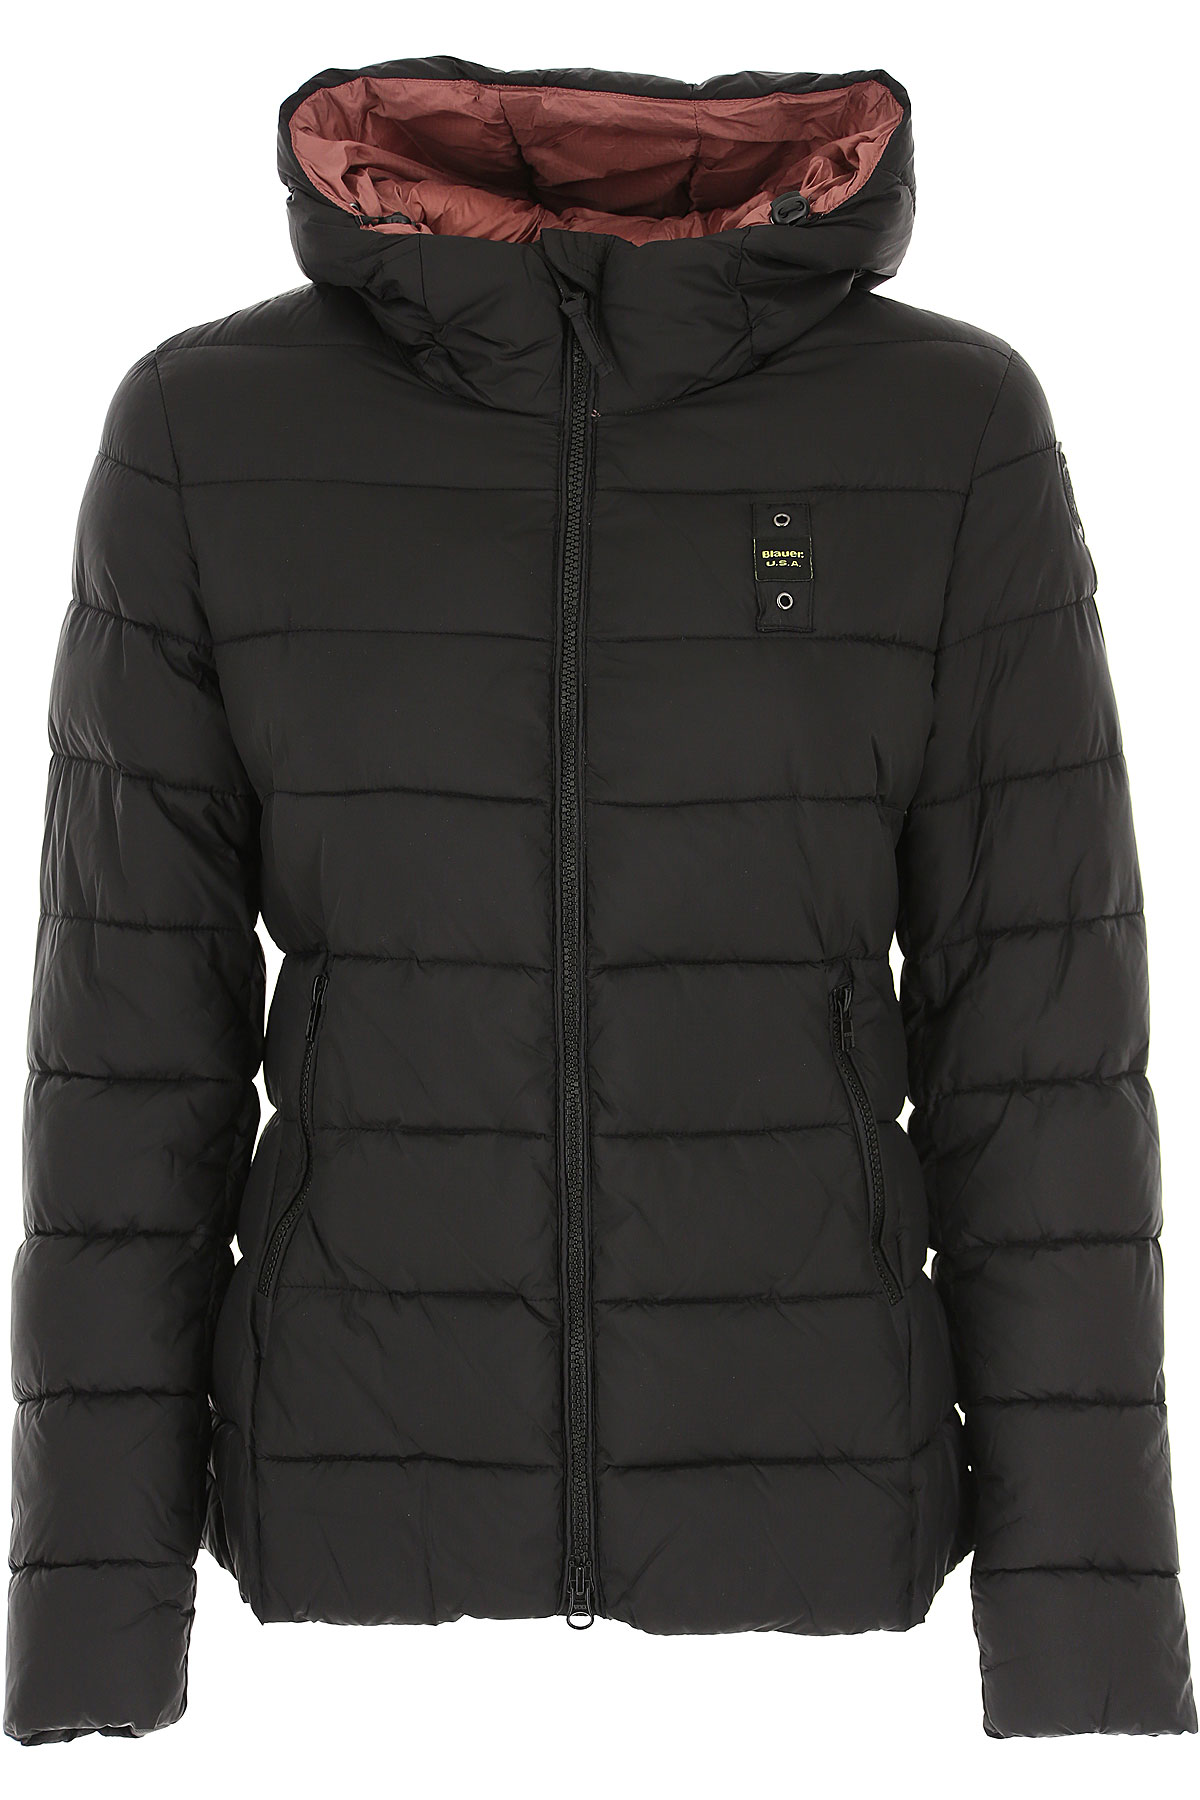 Blauer Down Jacket for Women, Puffer Ski Jacket On Sale, Black, polyester, 2019, 4 M S